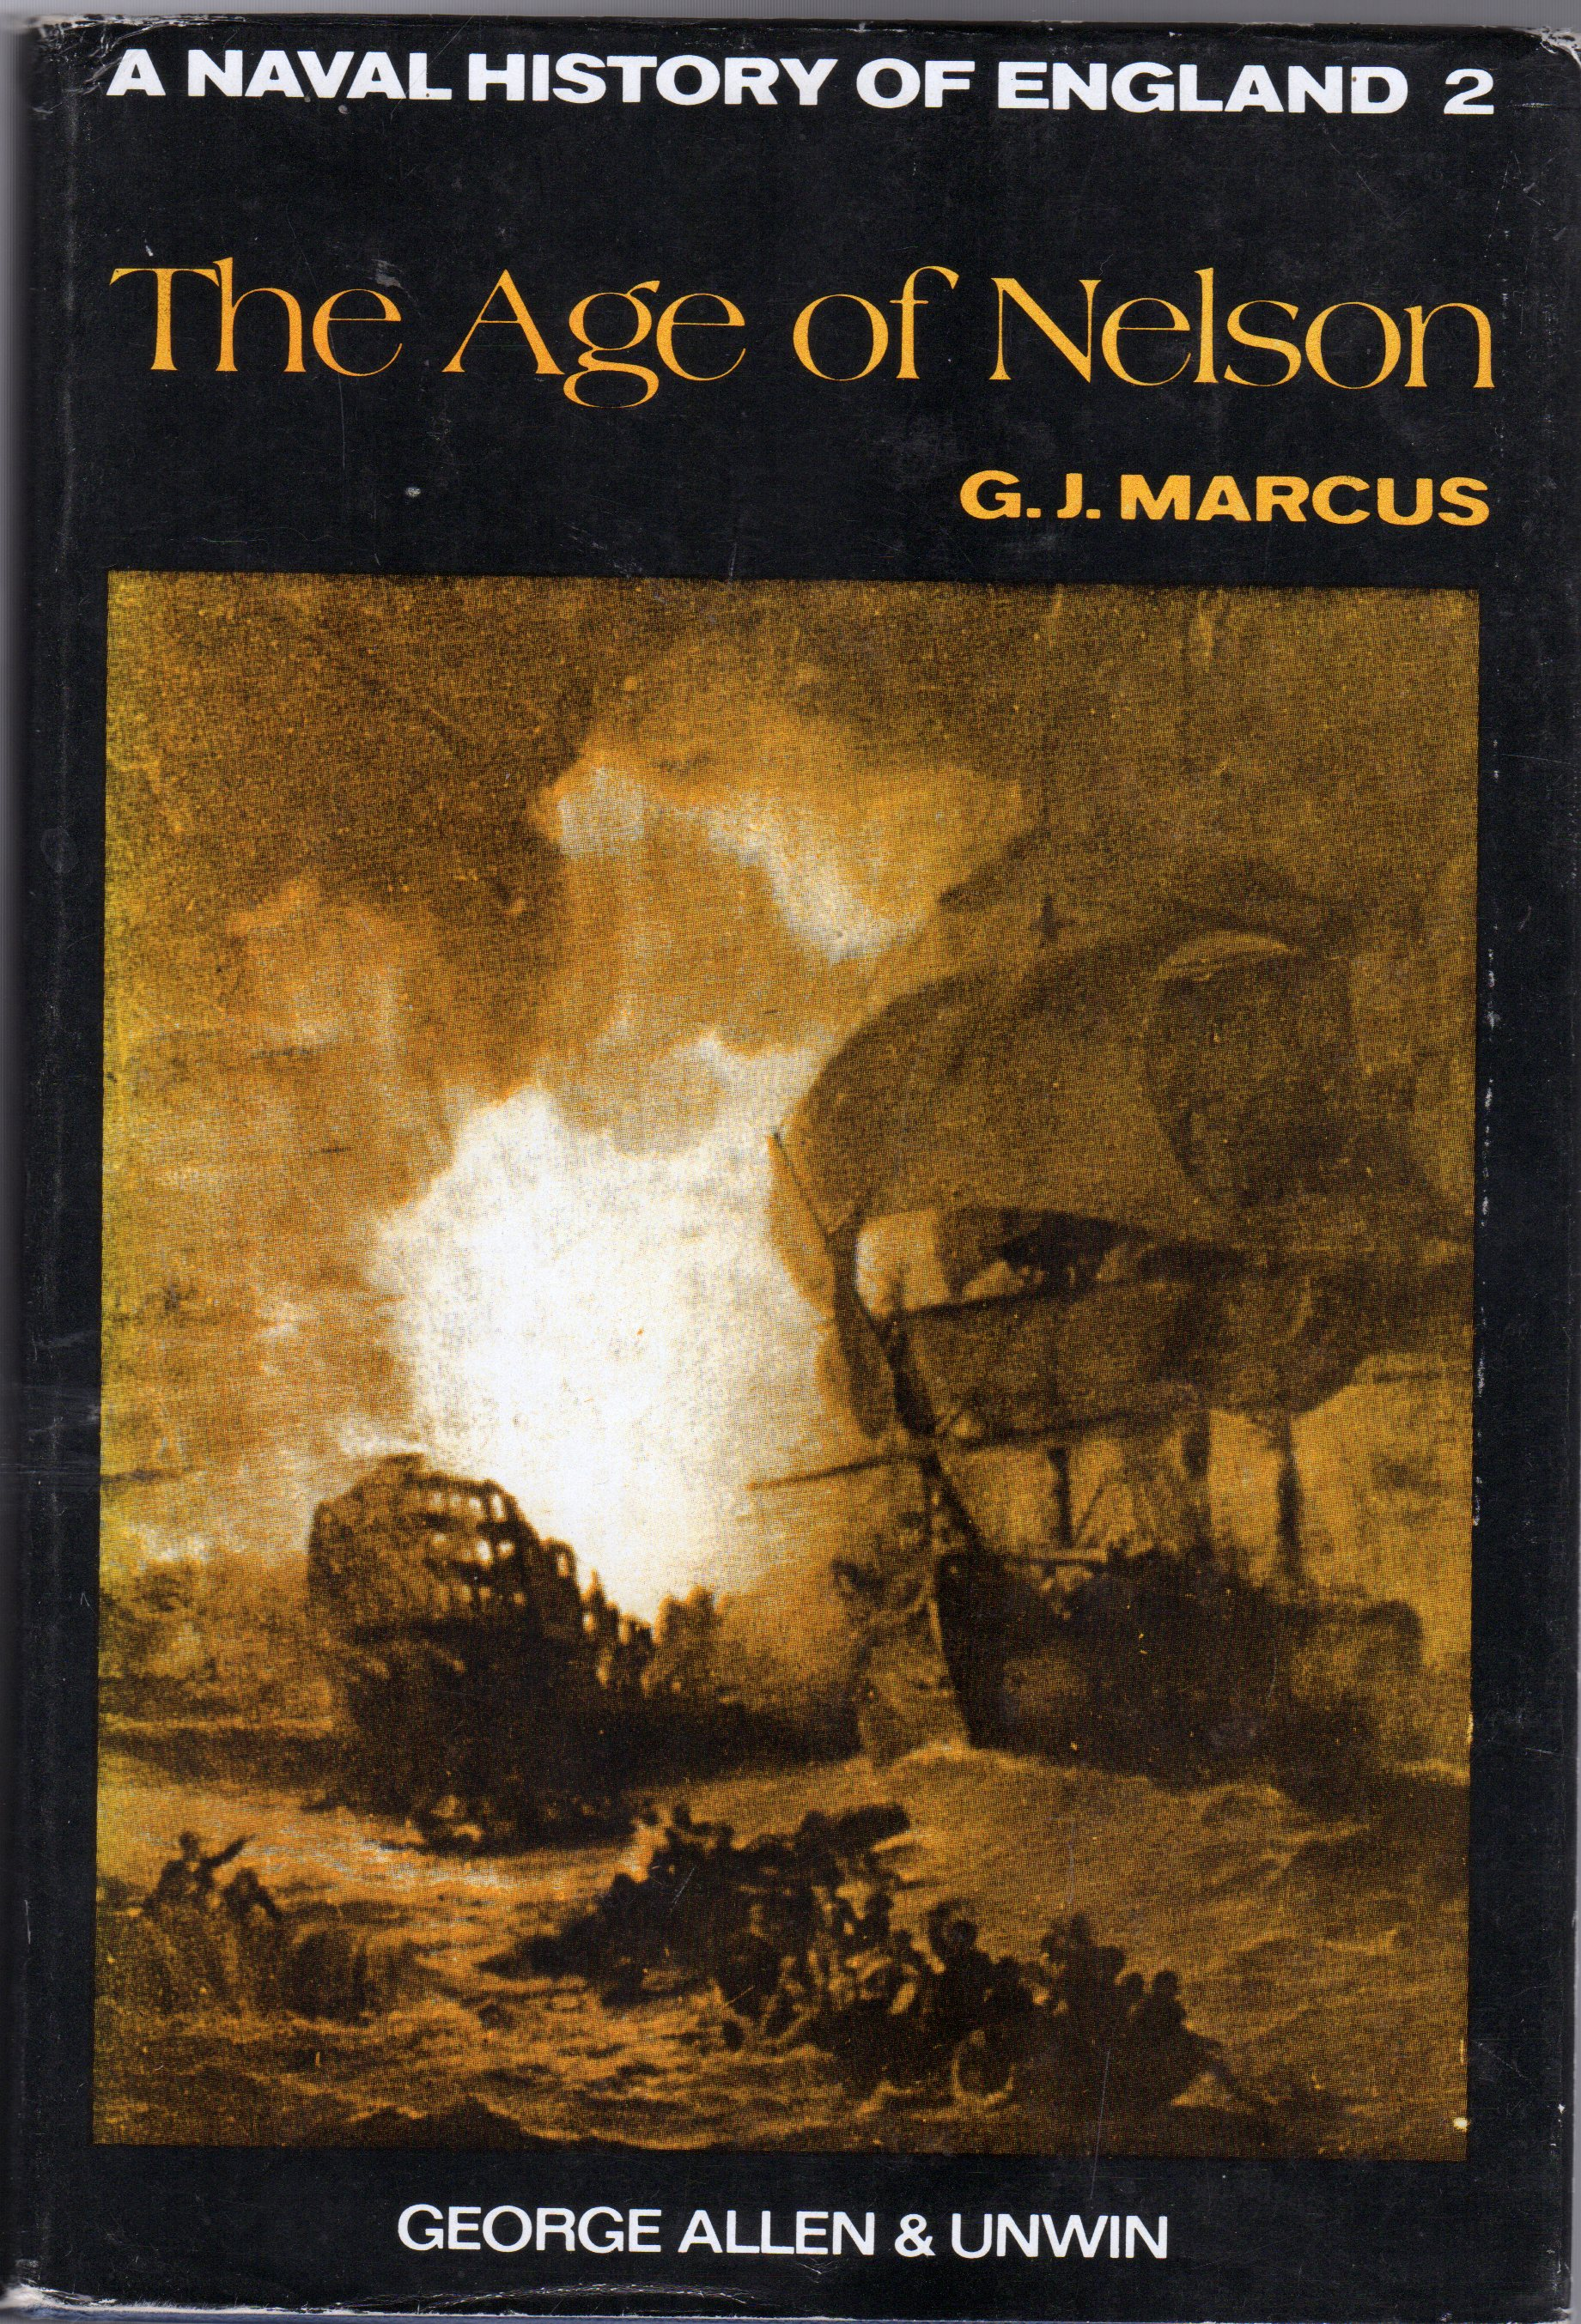 Image for Naval History of England : The Age of Nelson Part 2